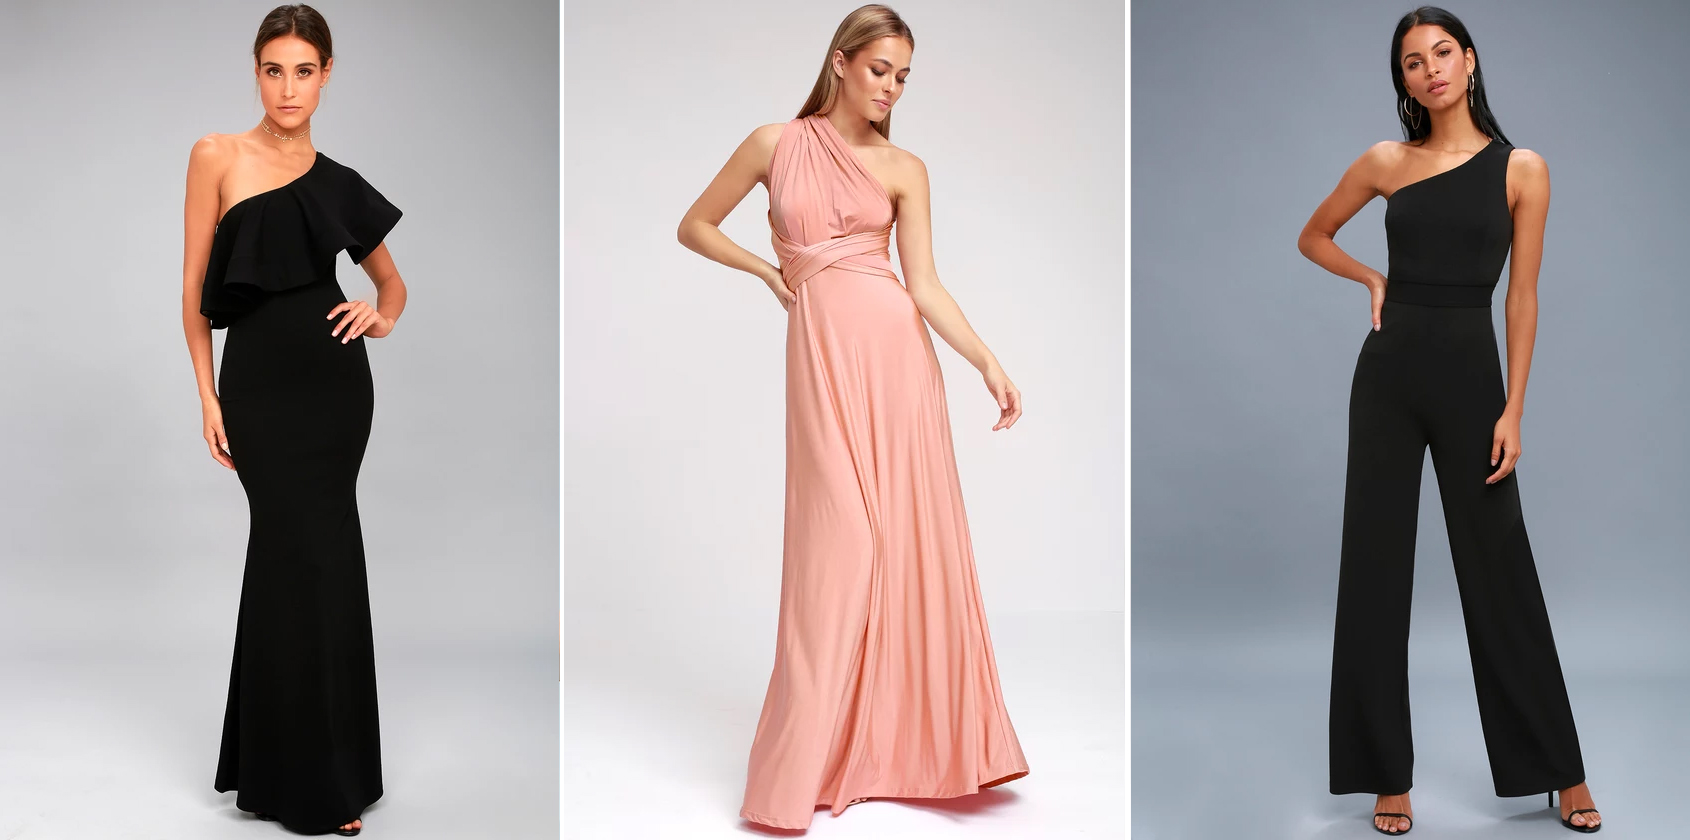 spring wedding trends - one shoulder